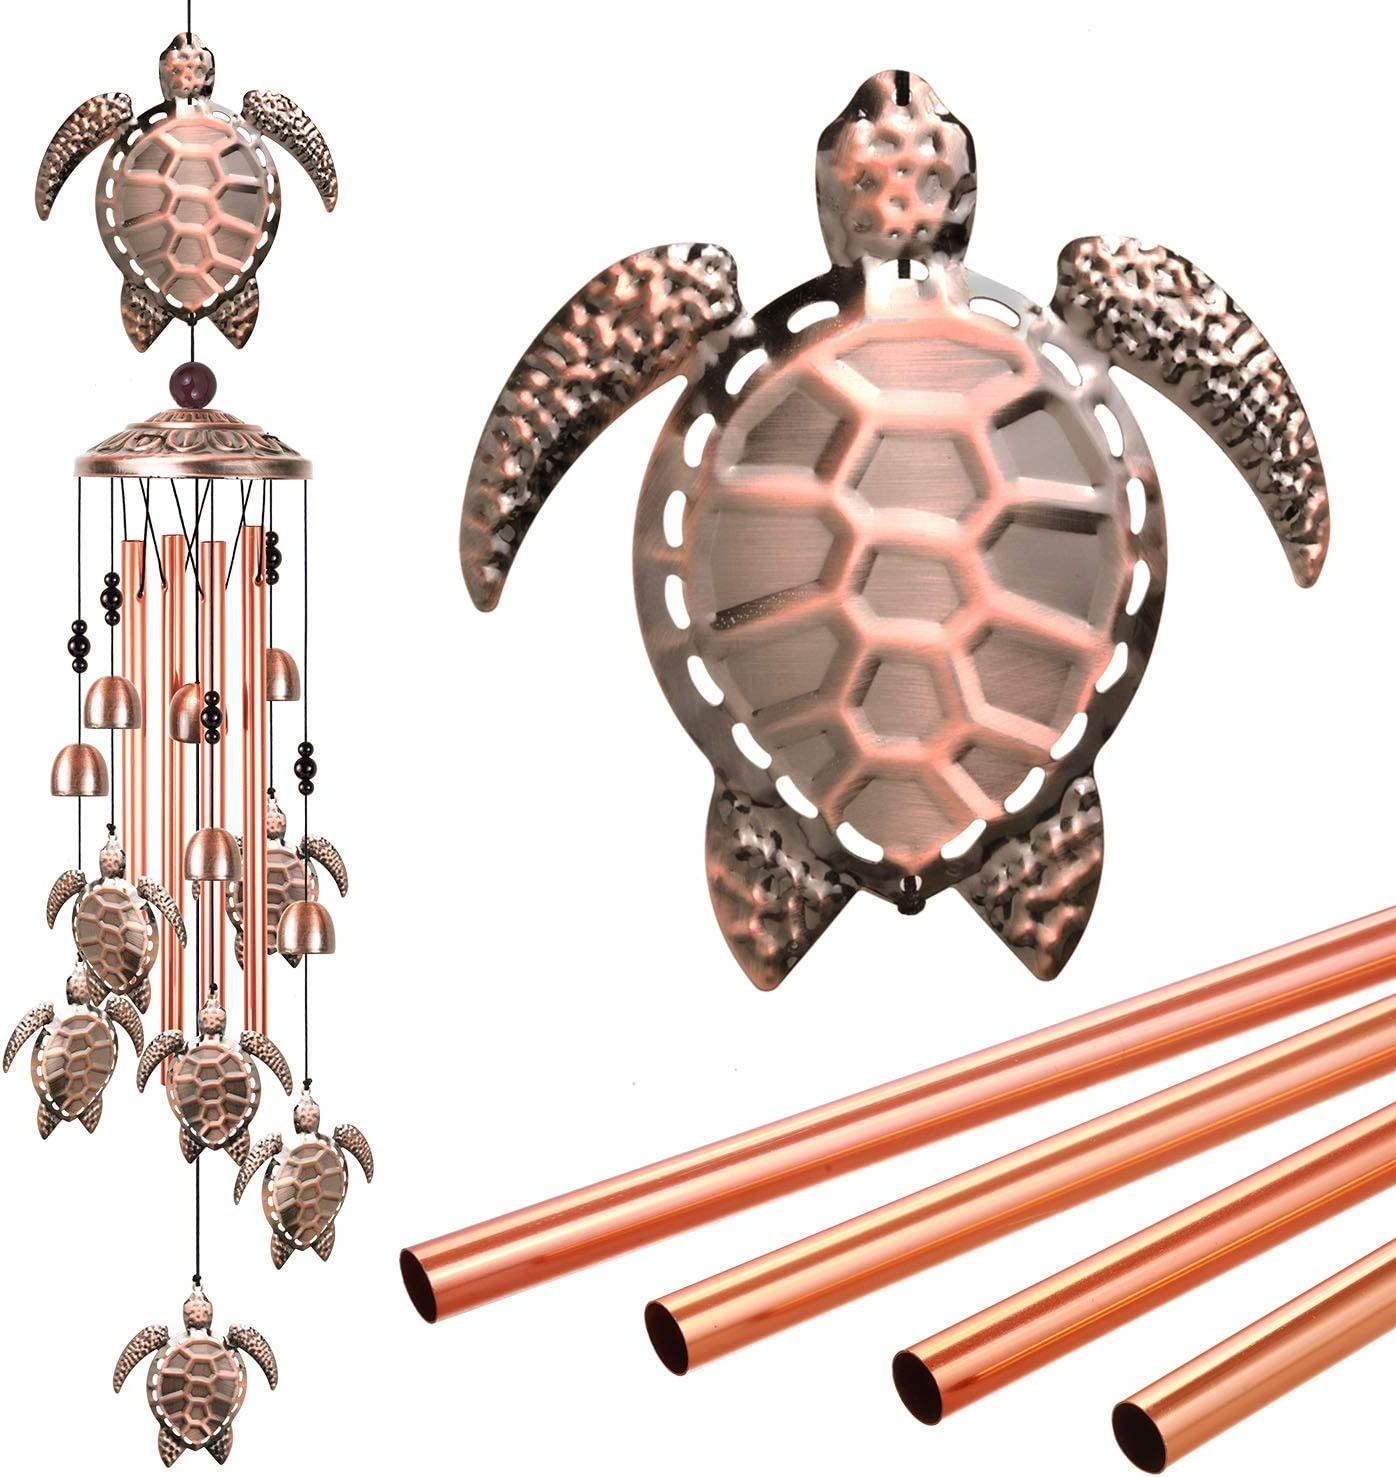 ME9UE Sea Turtle Wind Chimes Outdoor Decor, Mobile Sea Turtles Wind Chime, Turtle Wind Bell, Wind Chime with 7 Turtles for Home, Yard, Patio, Garden Decoration, Valentines Gift, Festival Gift for Mom